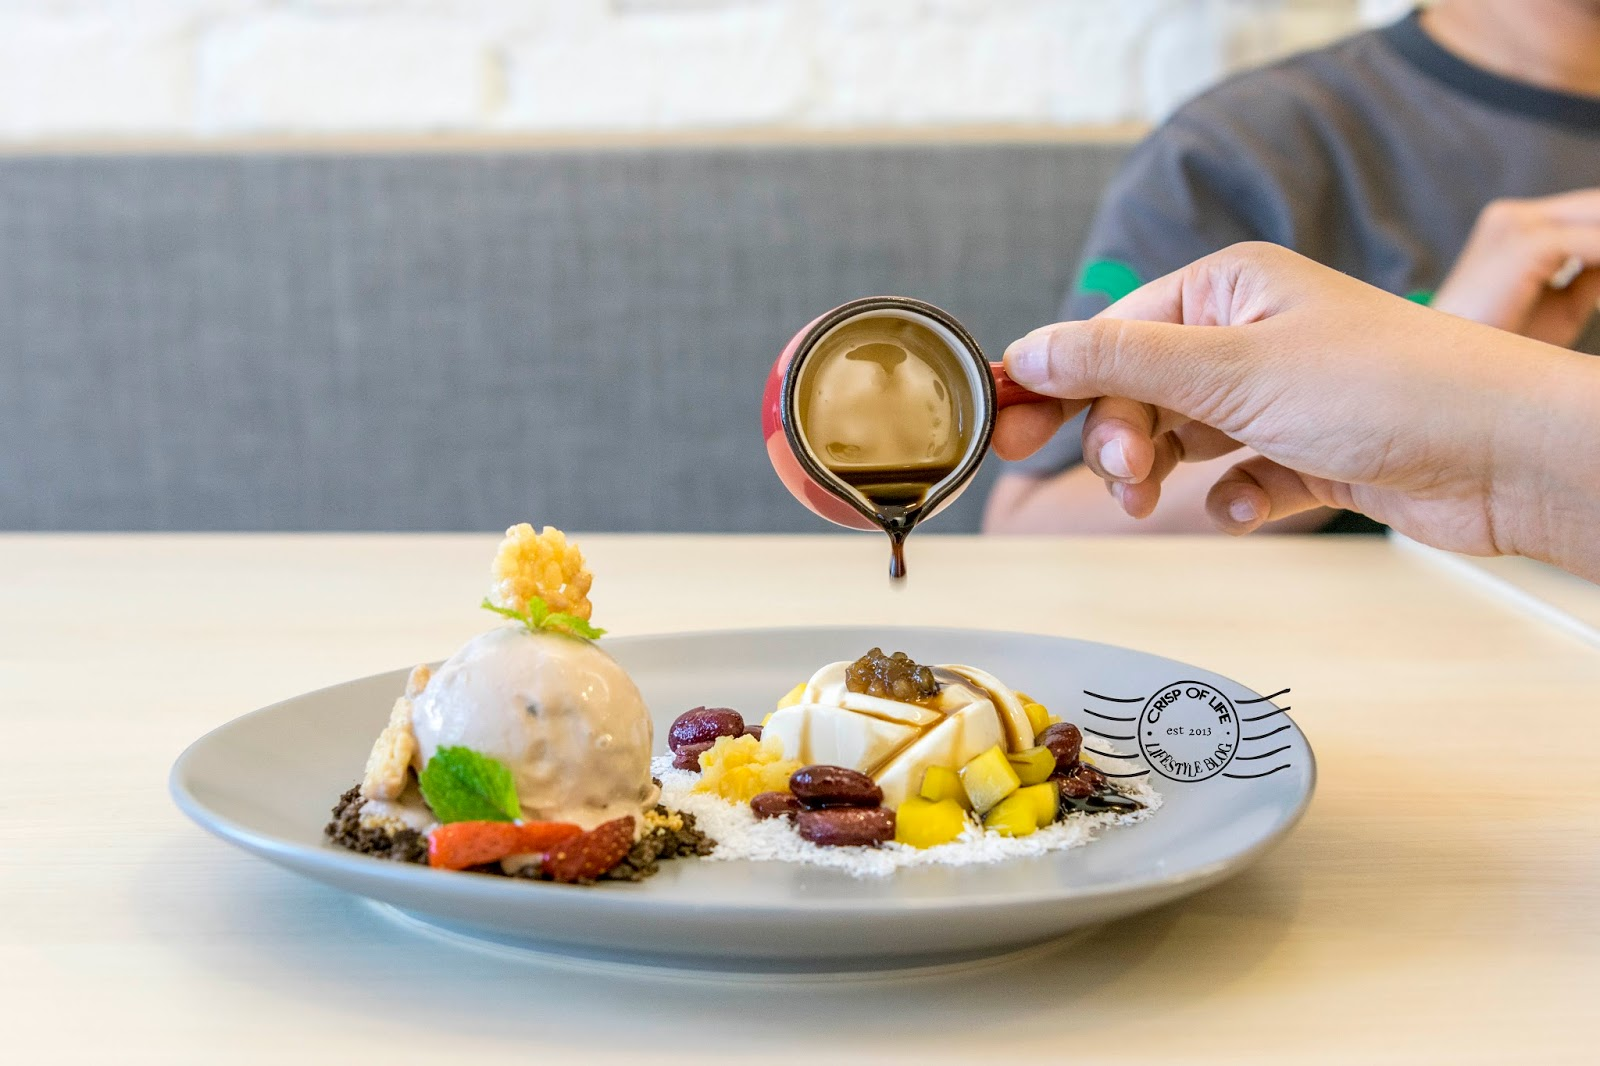 The Craftisan Cafe's New Dessert